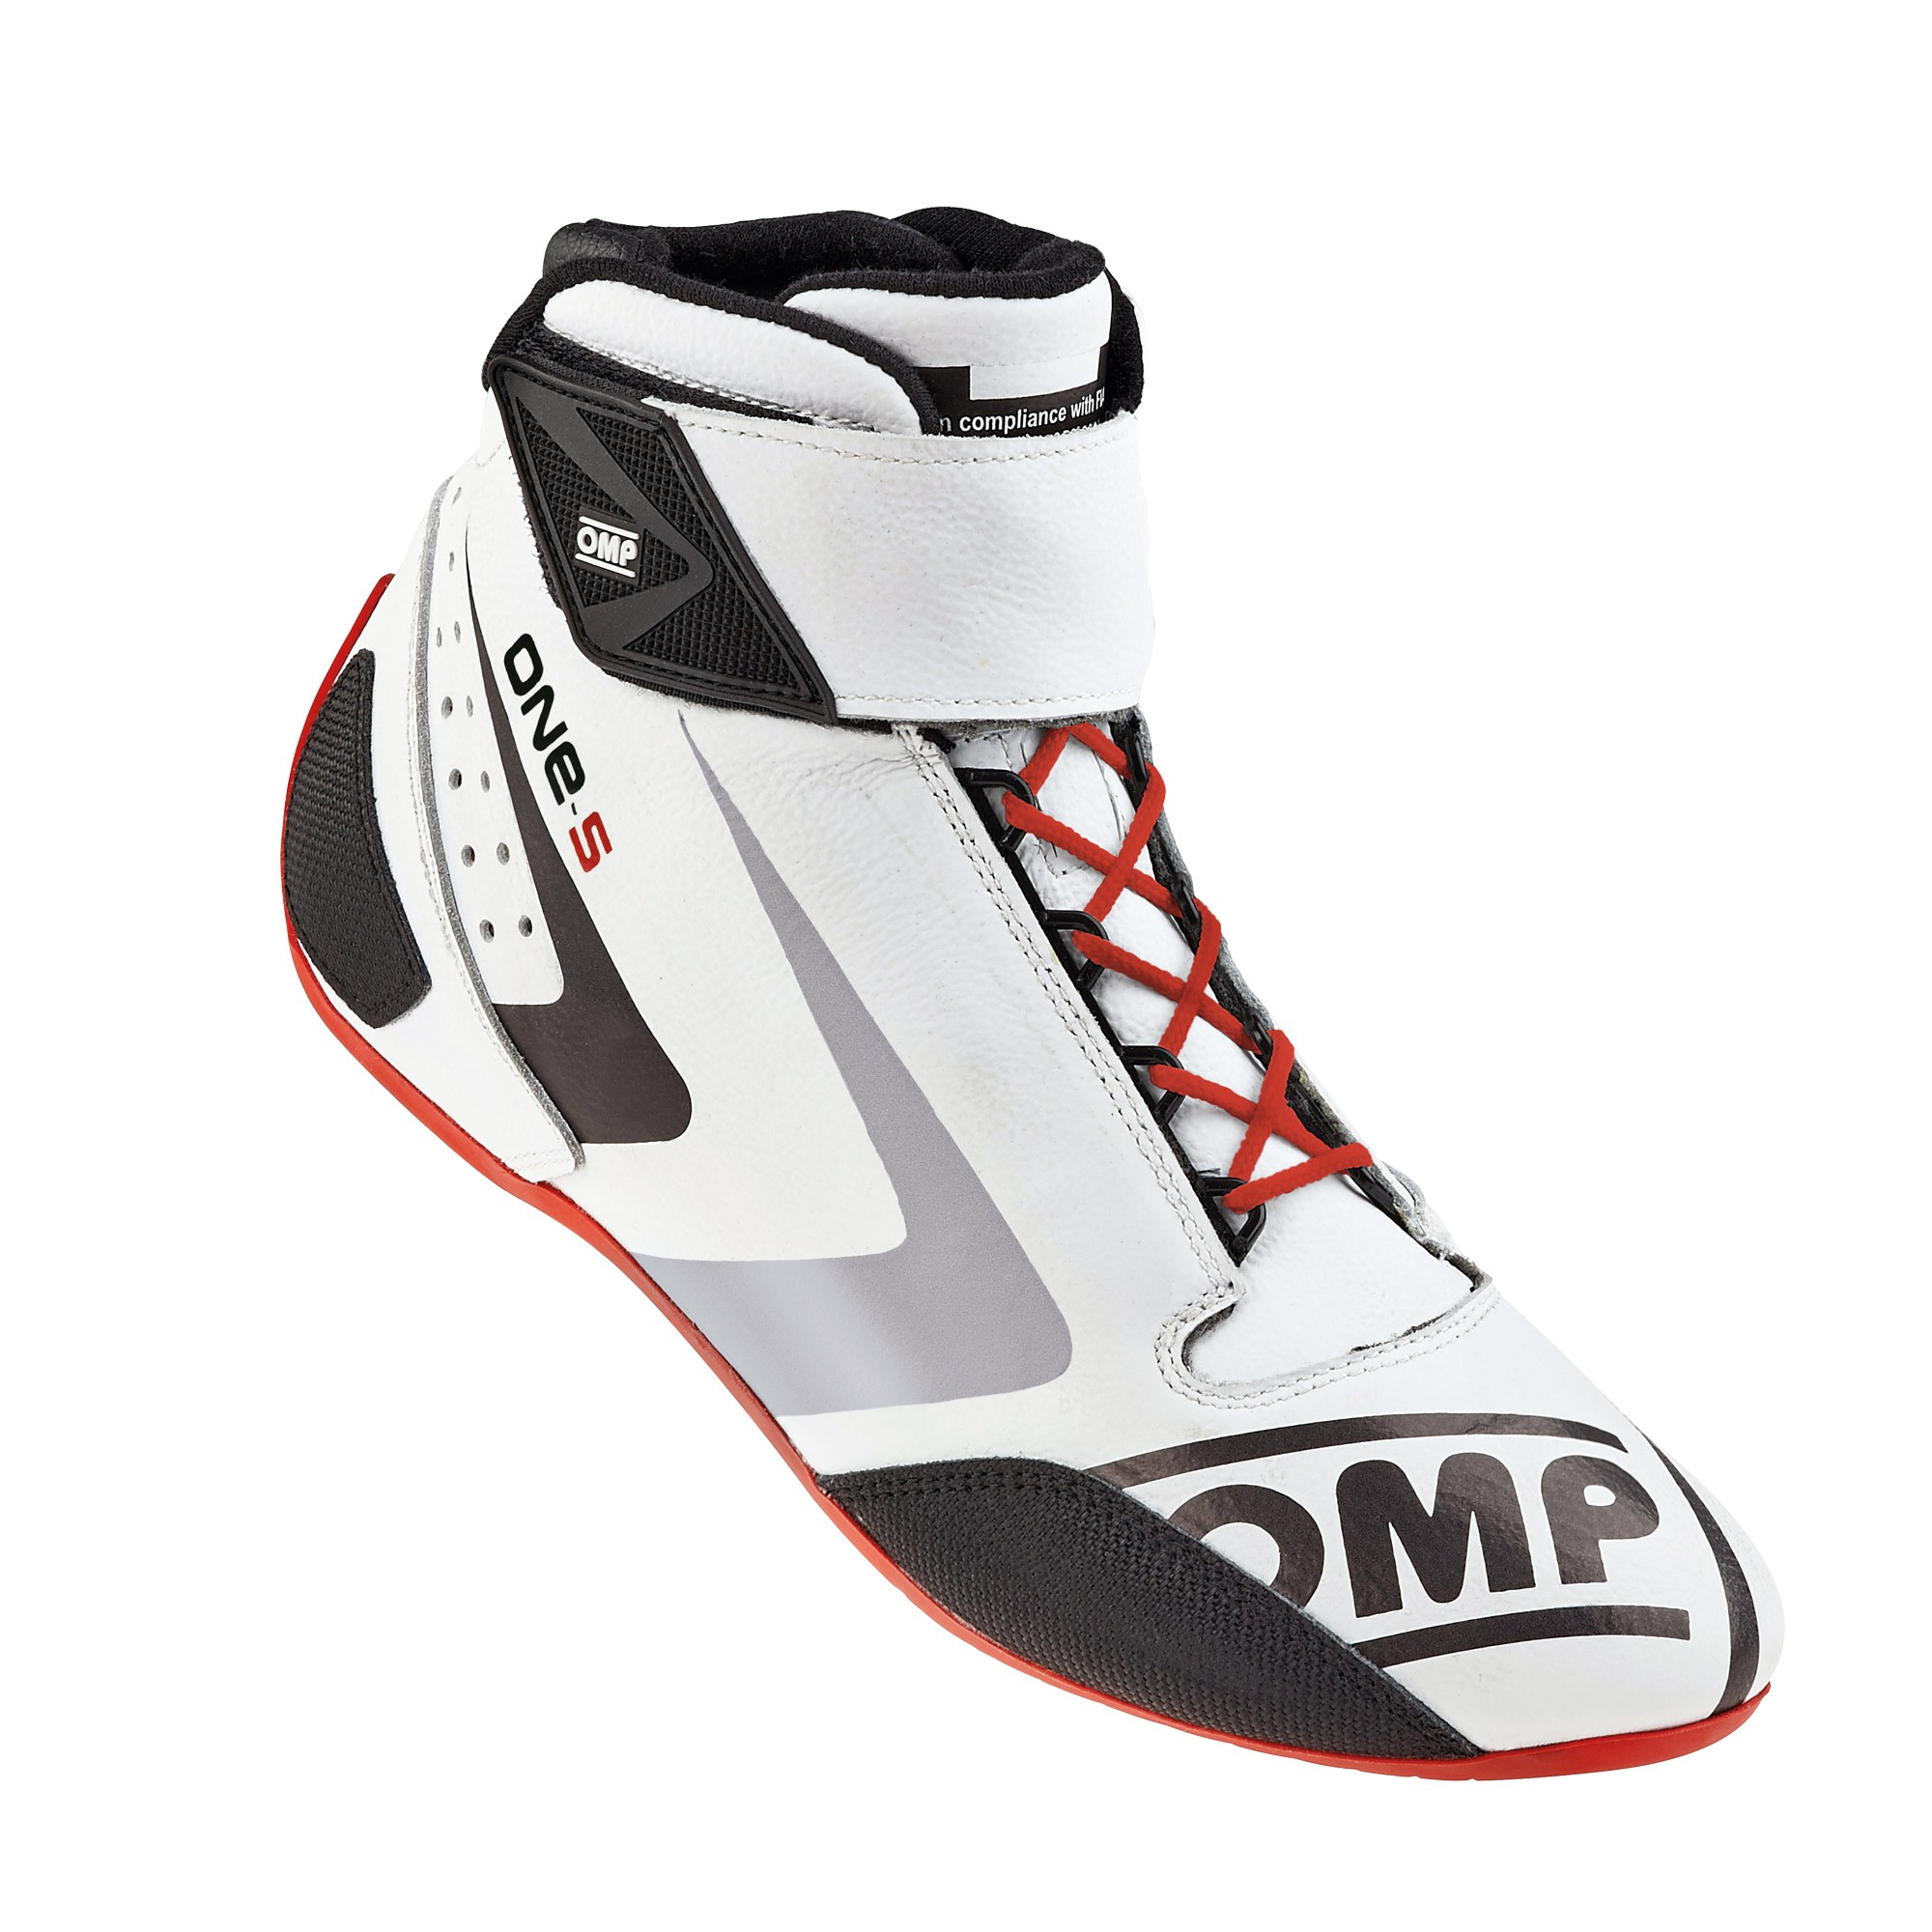 ONE S SHOES MY 2016 Racing boots | OMP RACING